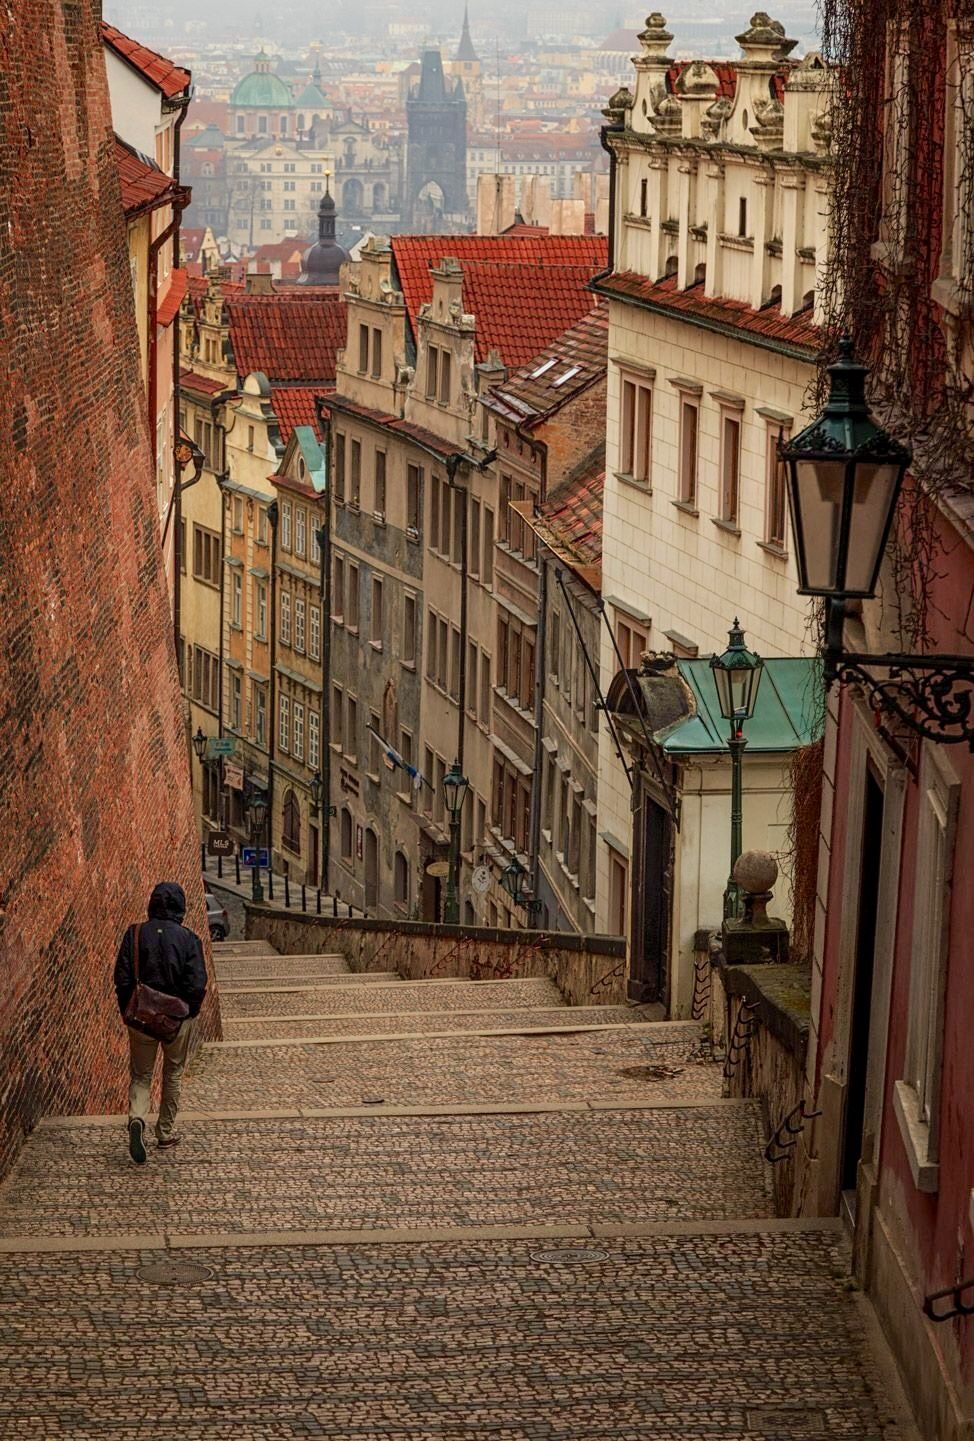 Road Less Traveled Zamecke Schody Prague Czech Republic With